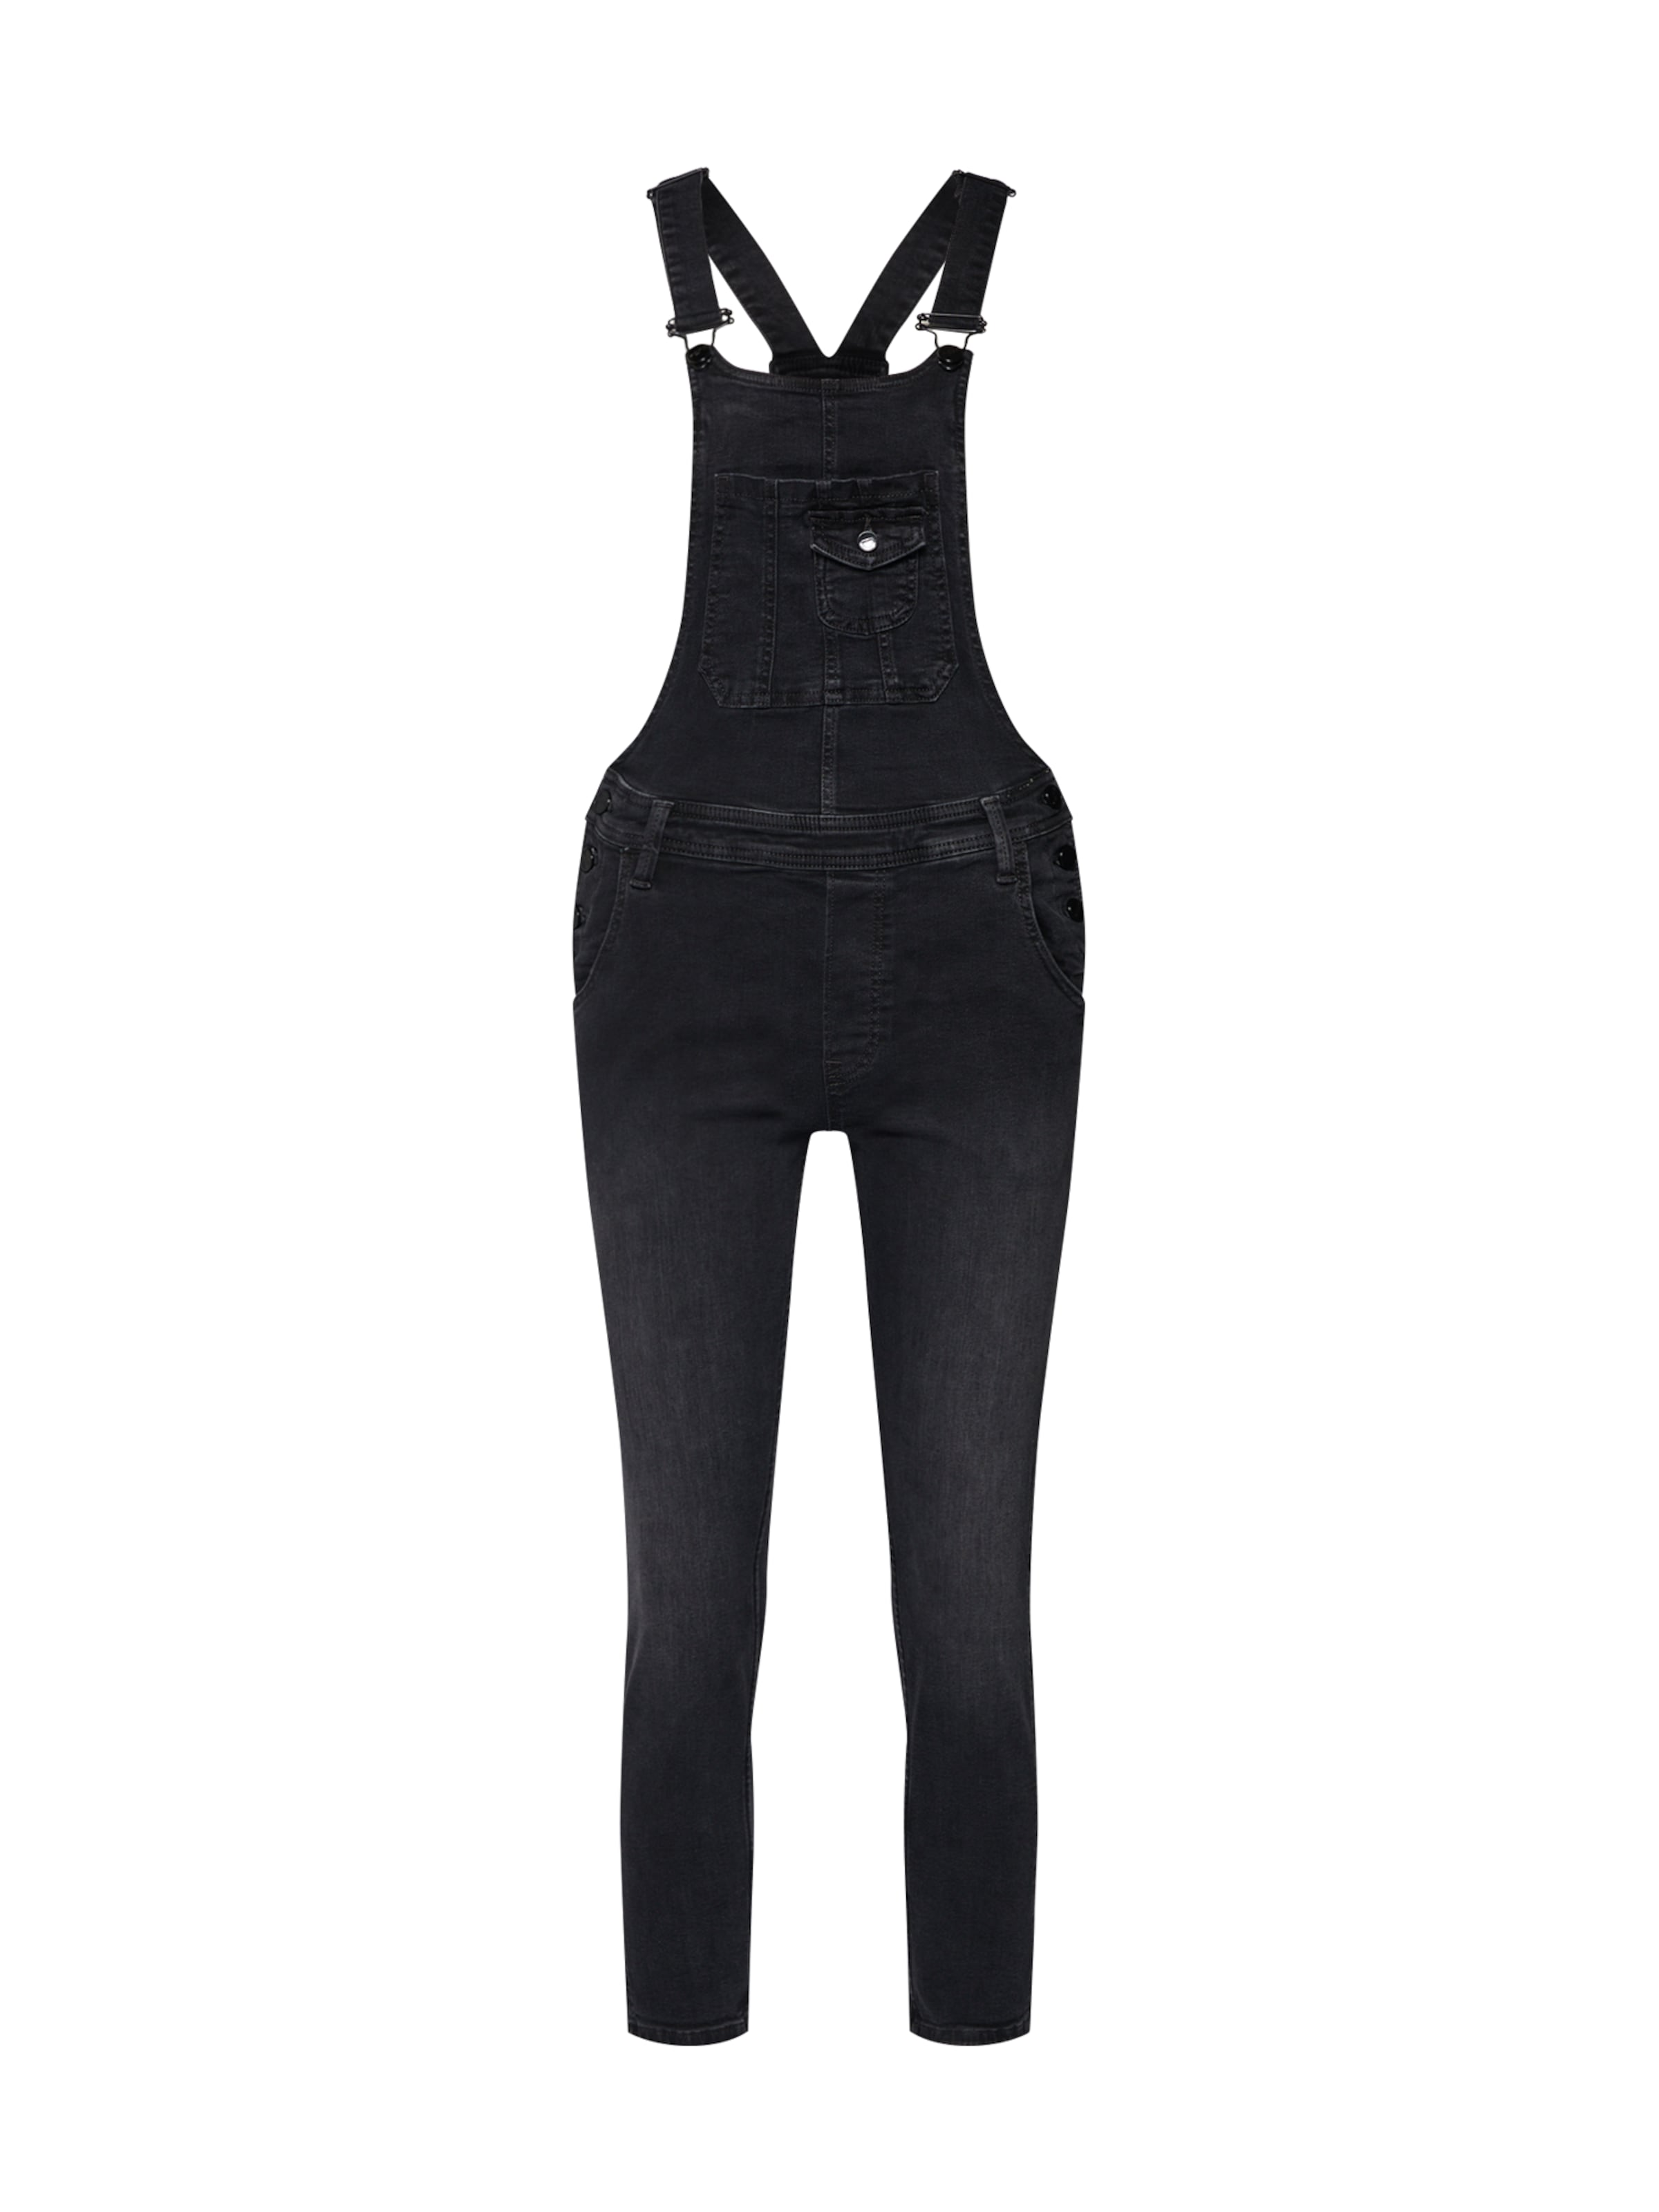 Pepe Pepe Pepe Jeans Latzhose 'HICKORY' in schwarz  Mode neue Kleidung 6fdbe6